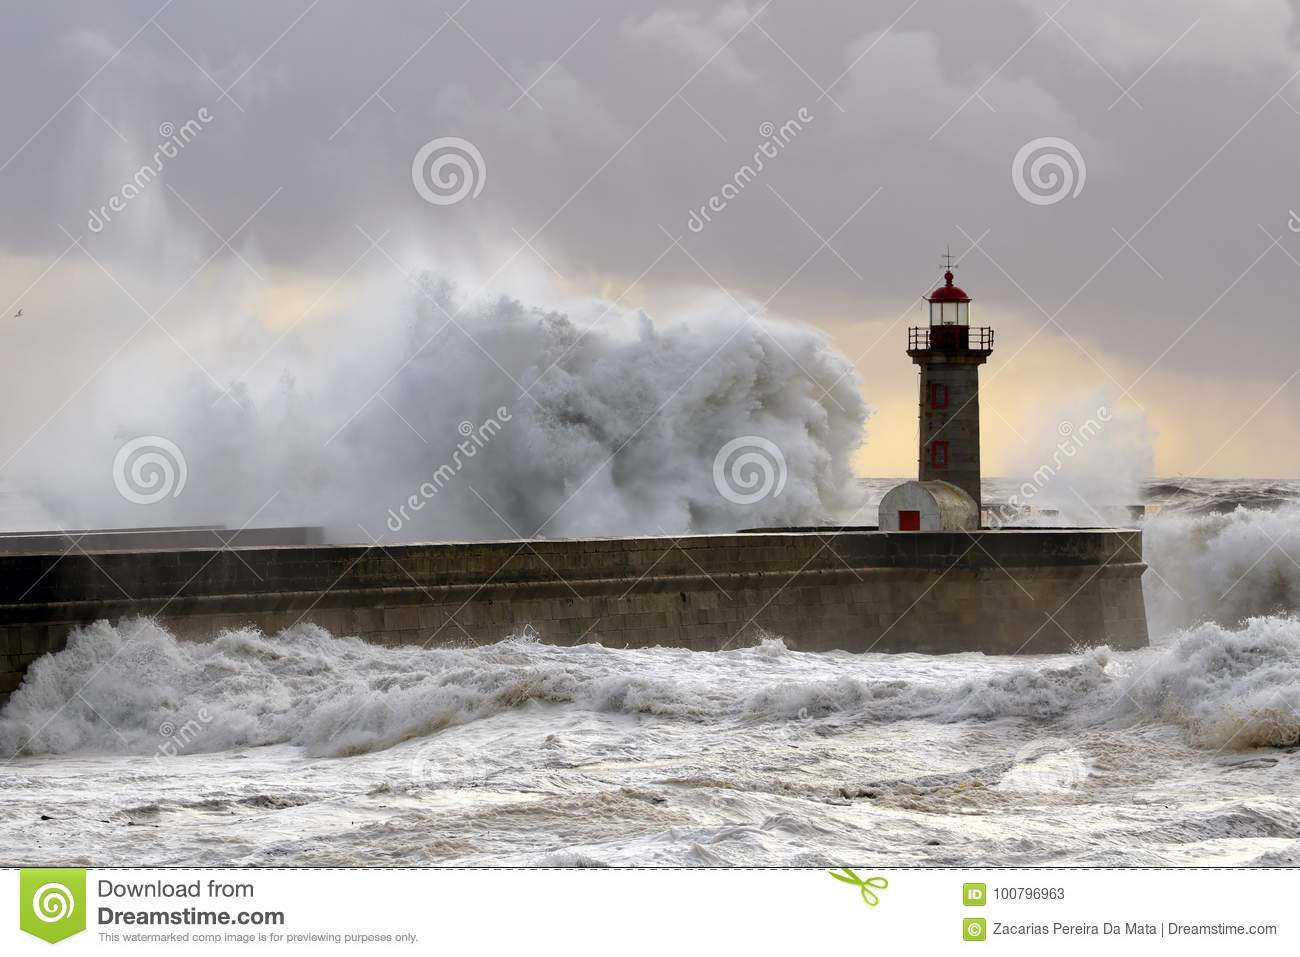 Grande vague contre le phare au coucher du soleil